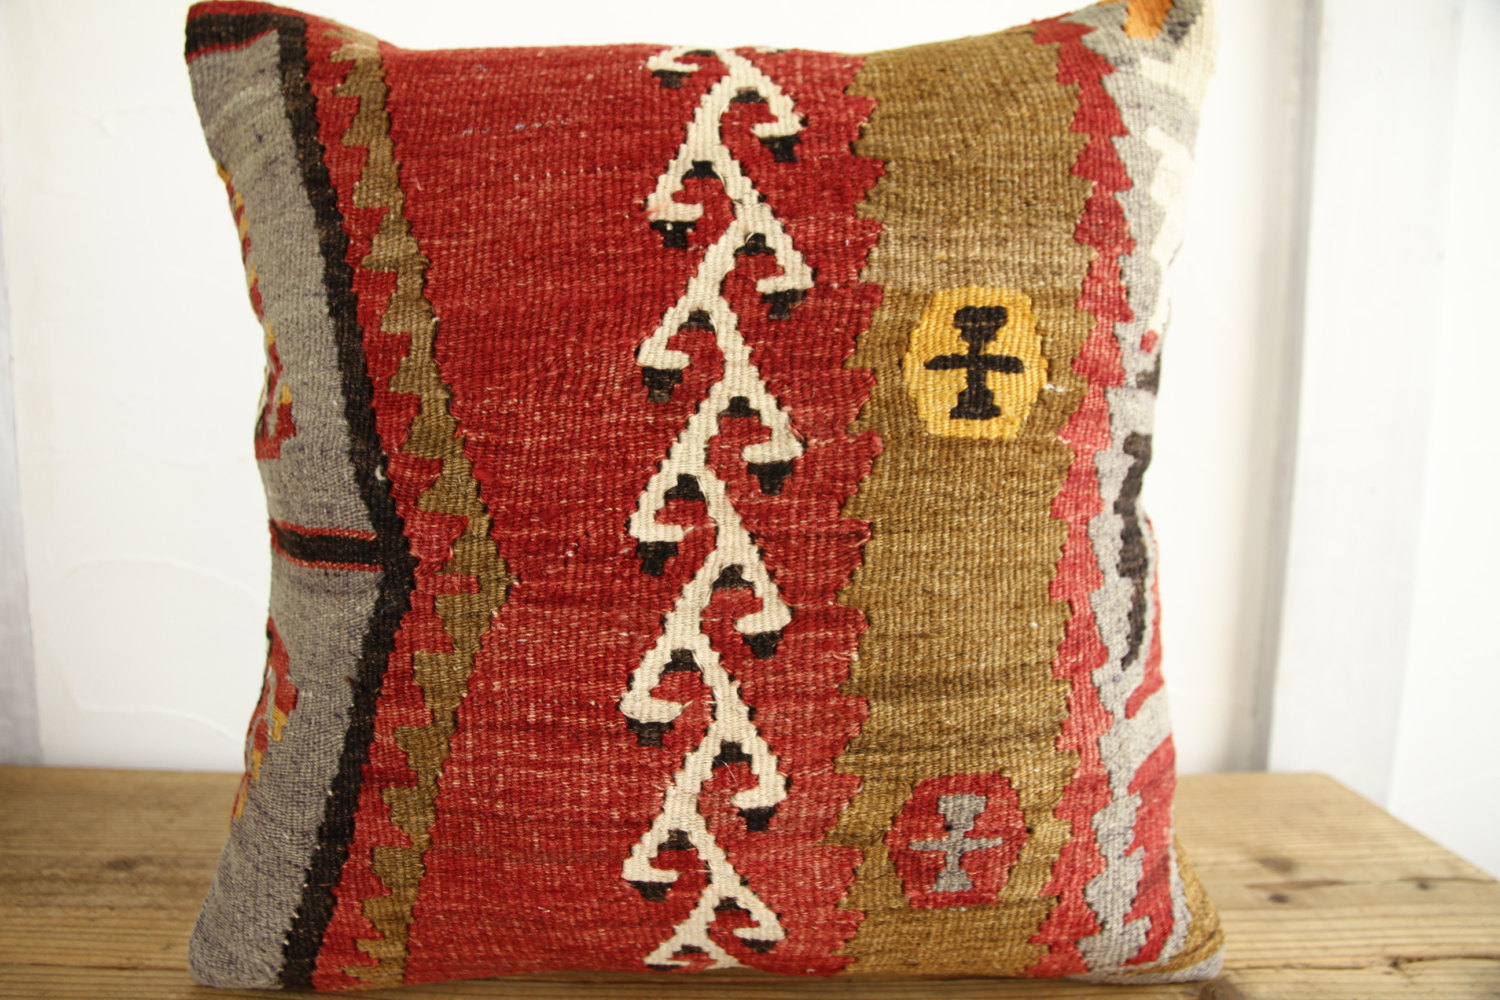 Kilim Pillows |18x18| Decorative Pillows | 289 | Accent Pillows, Kilim cushion